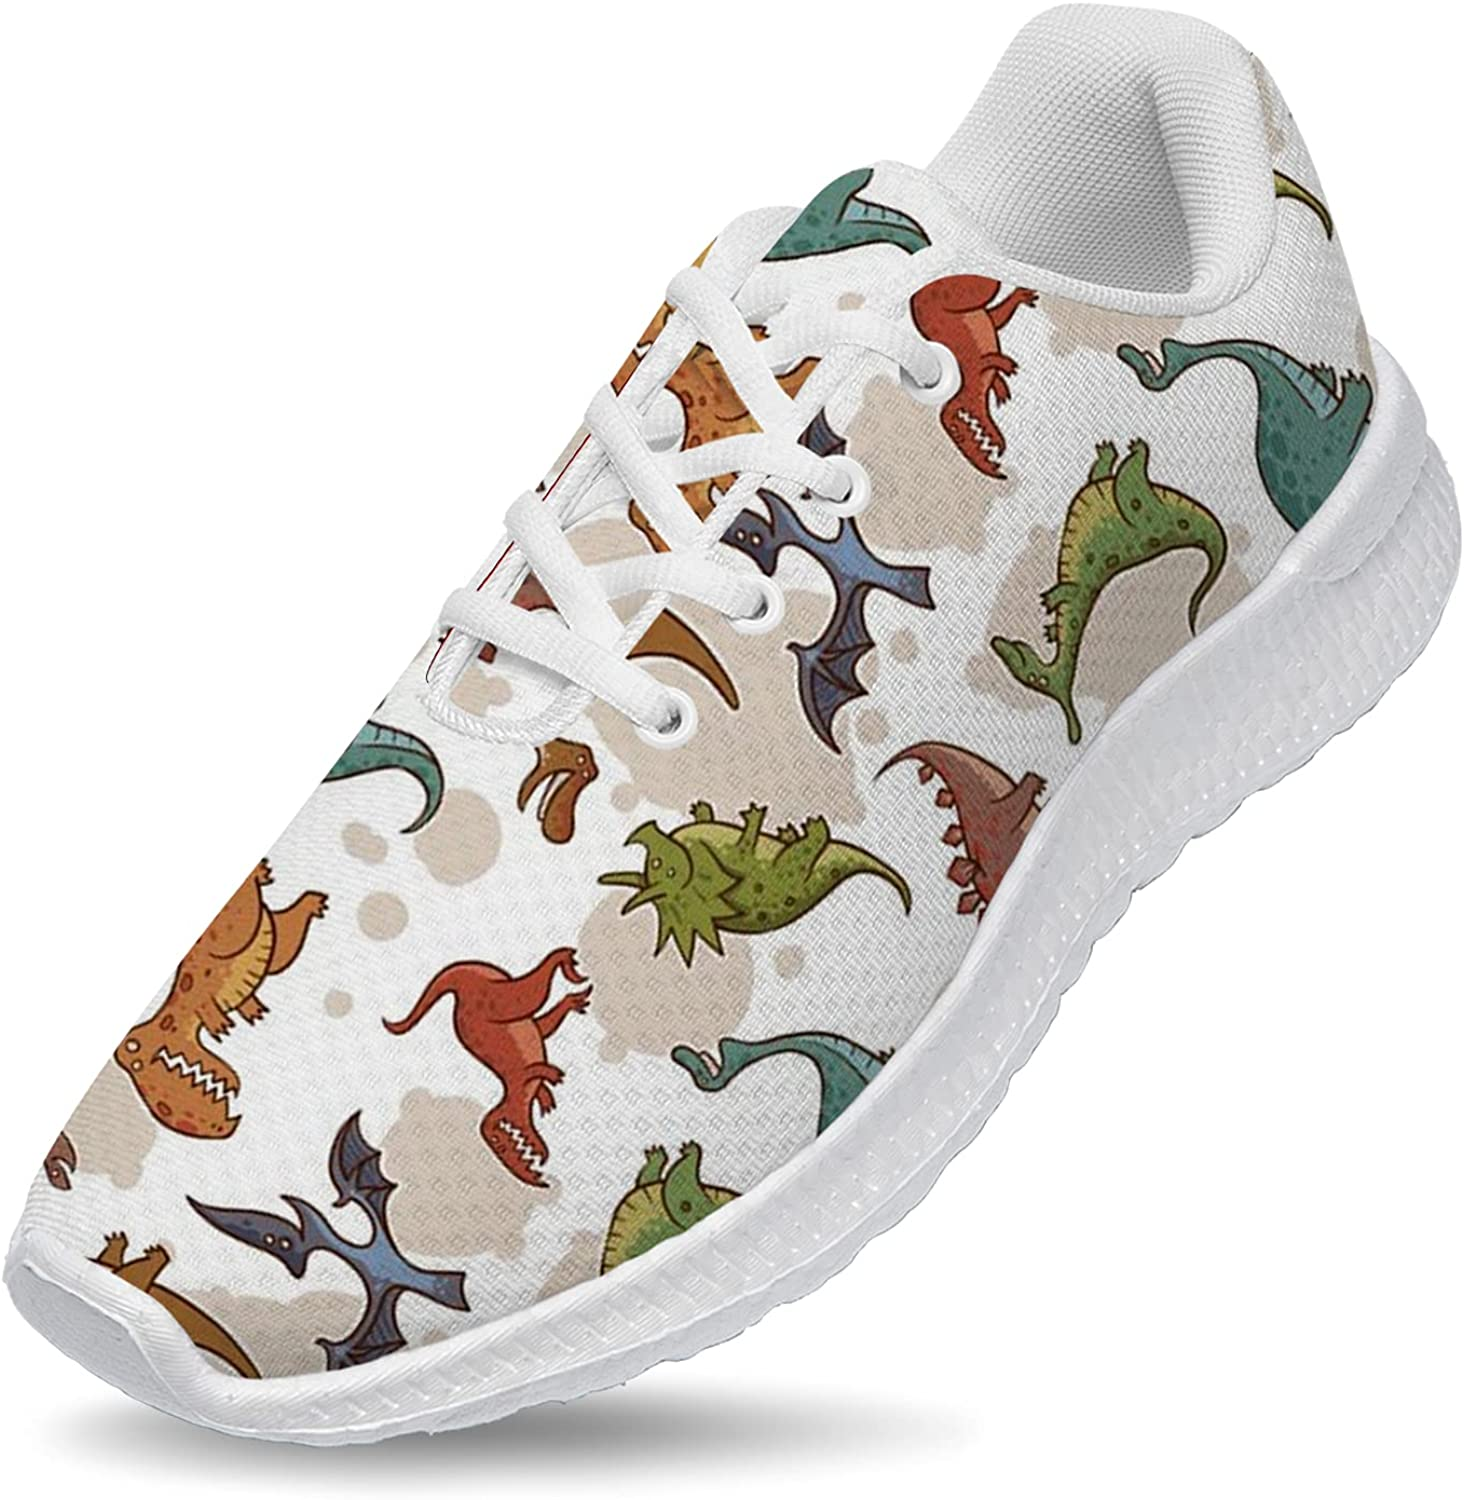 Sale special price Ciadoon New York Mall Dinosaur Shoes Mens Lightweight Womens Running Sne